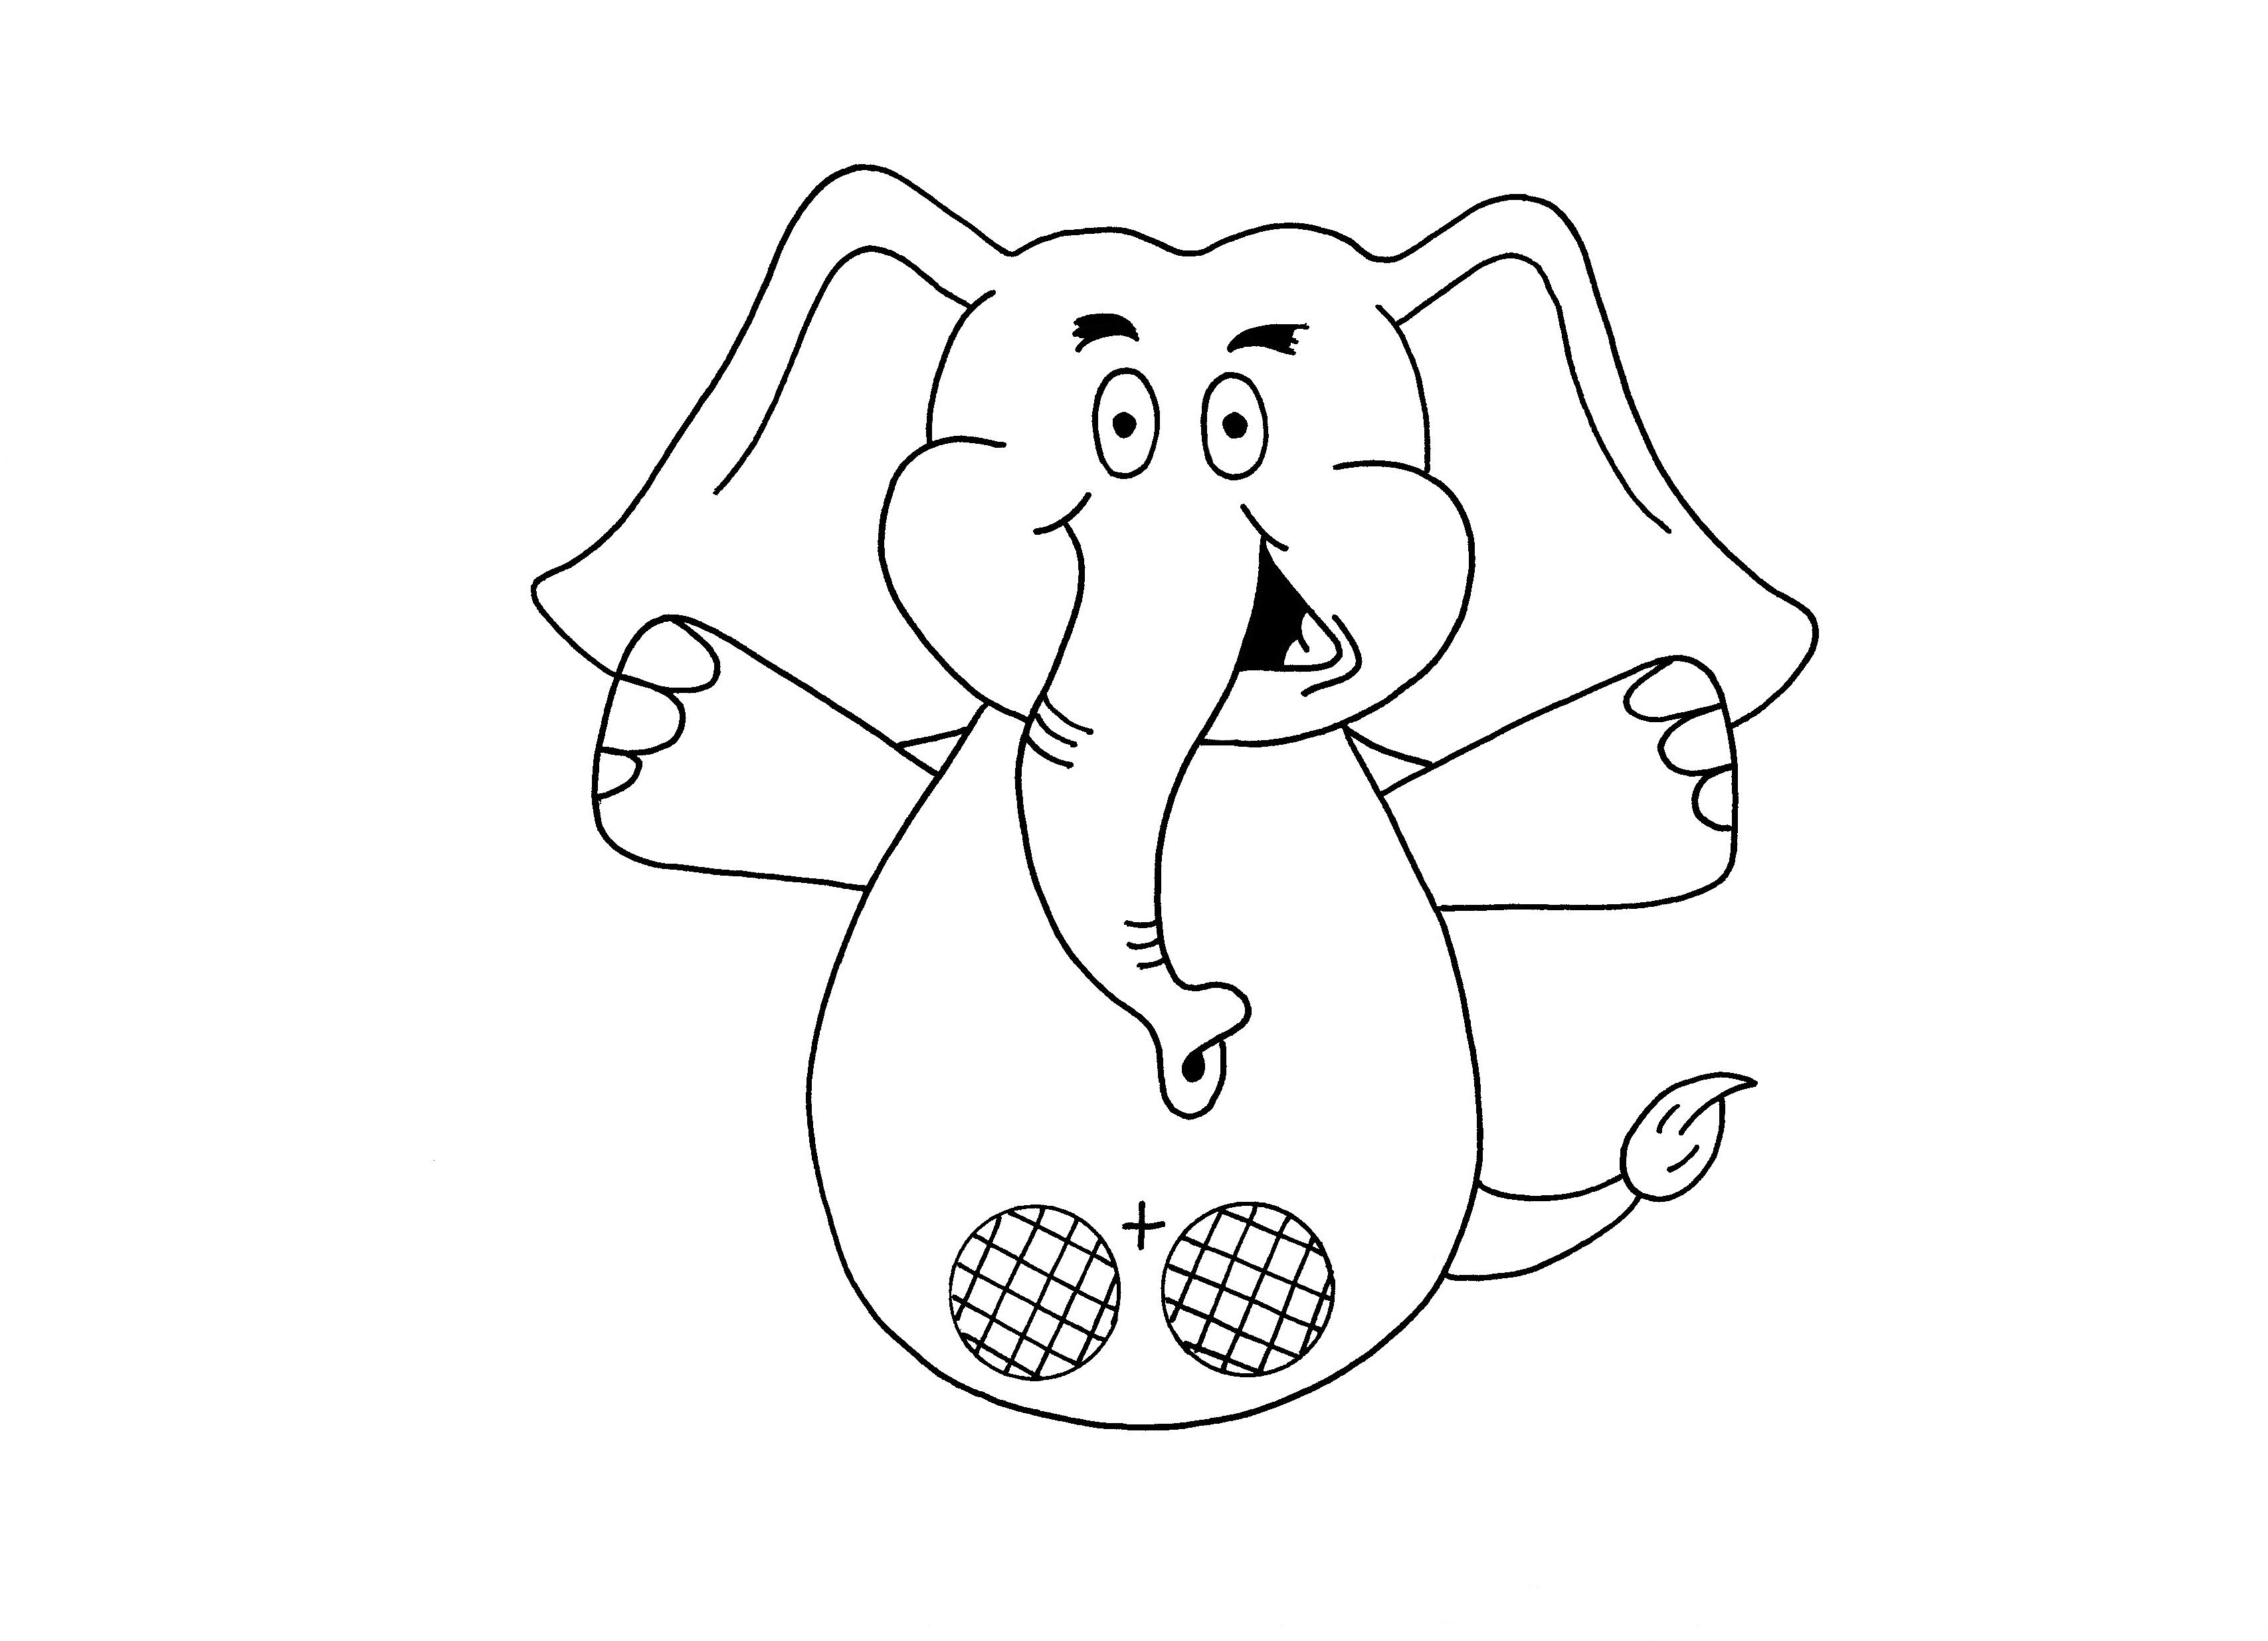 Printable elephant puppet bing images for Paper finger puppets templates